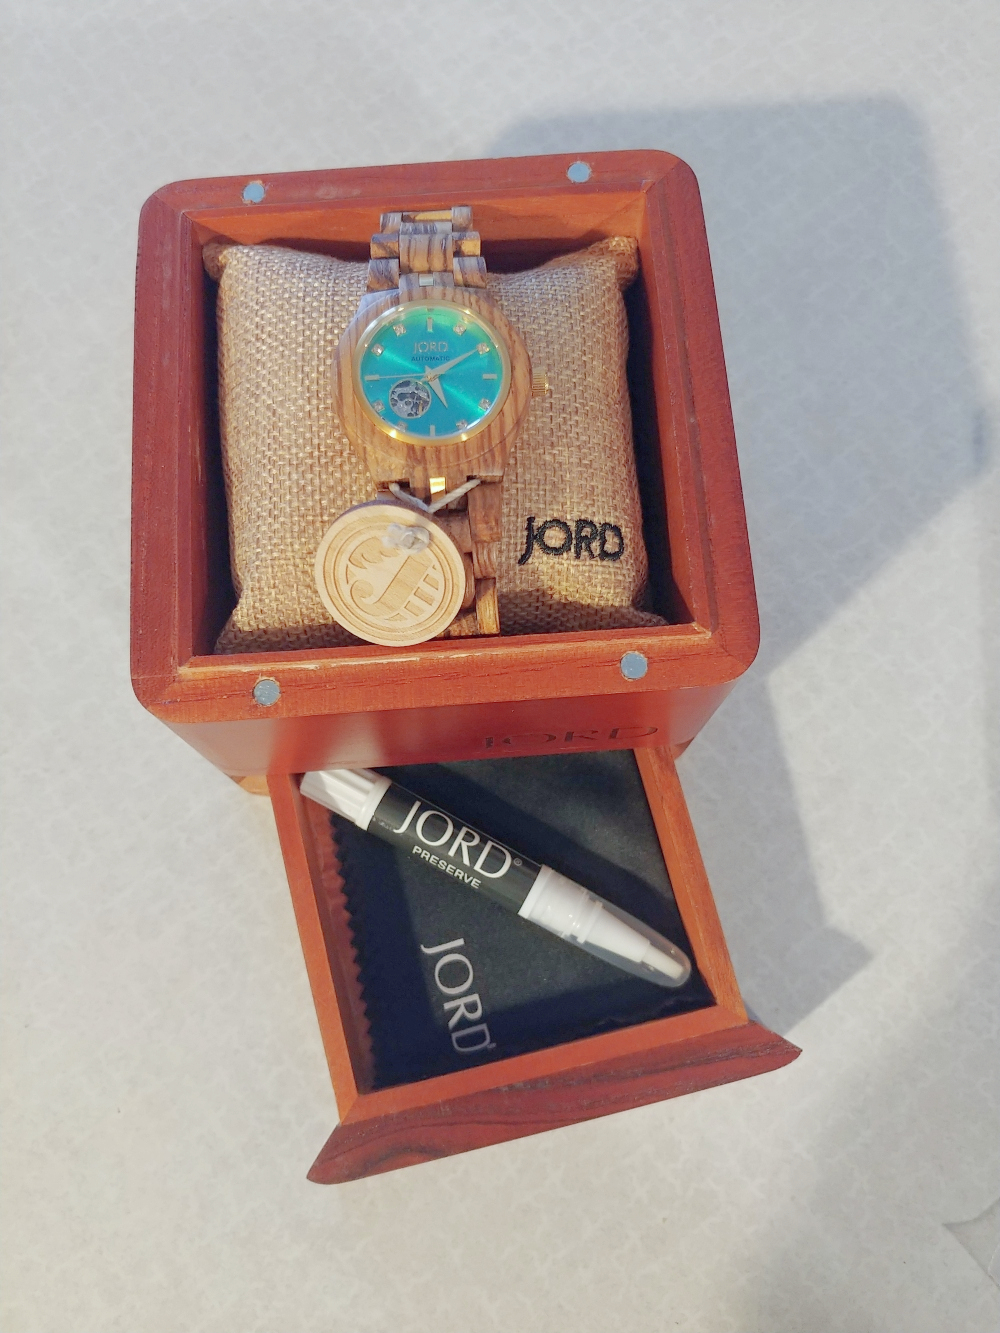 Jord watch in humidor box